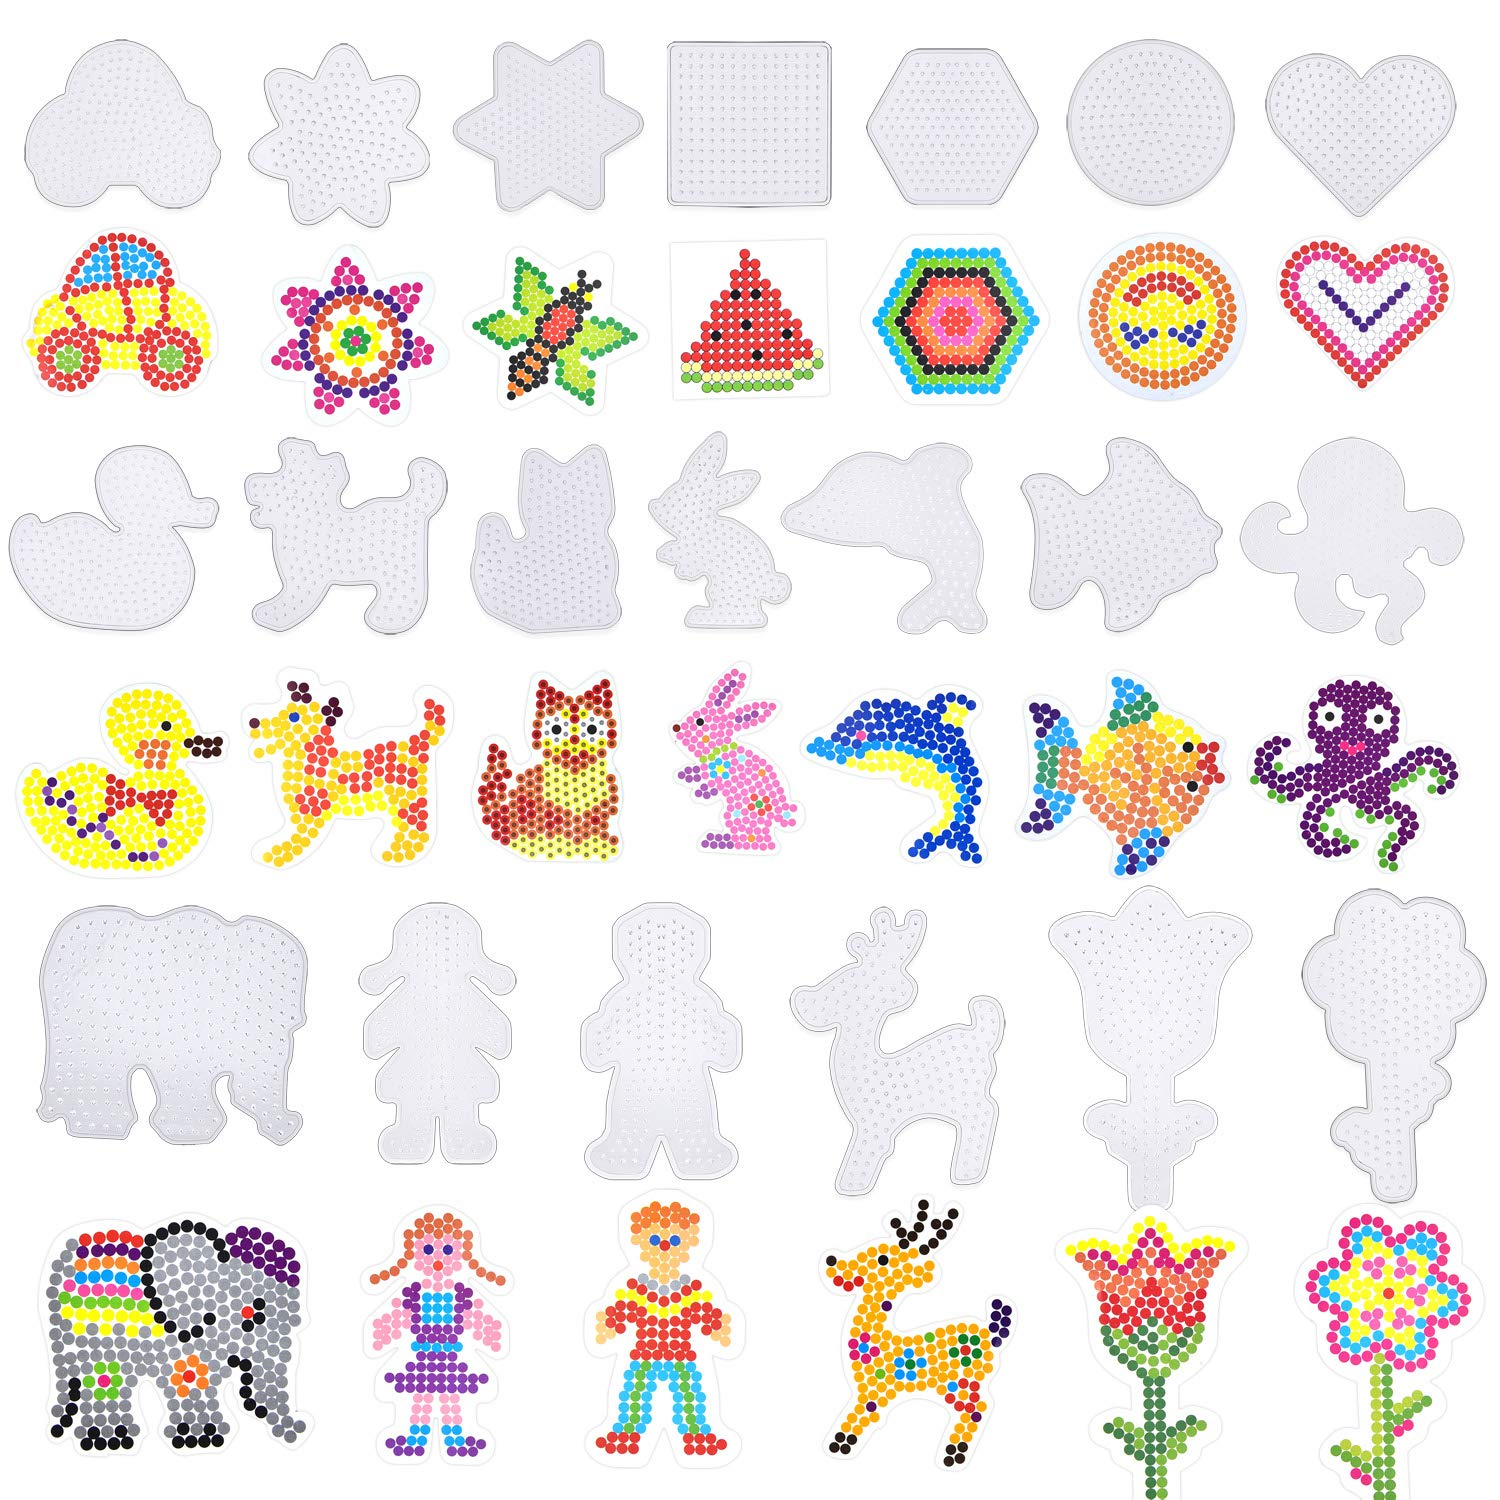 Coopay 20 Pieces Fuse Beads Pegboards Clear Plastic Template Beads Boards Different Shapes with 20 Pieces Colorful Cards for Kids Craft Supplies by Coopay